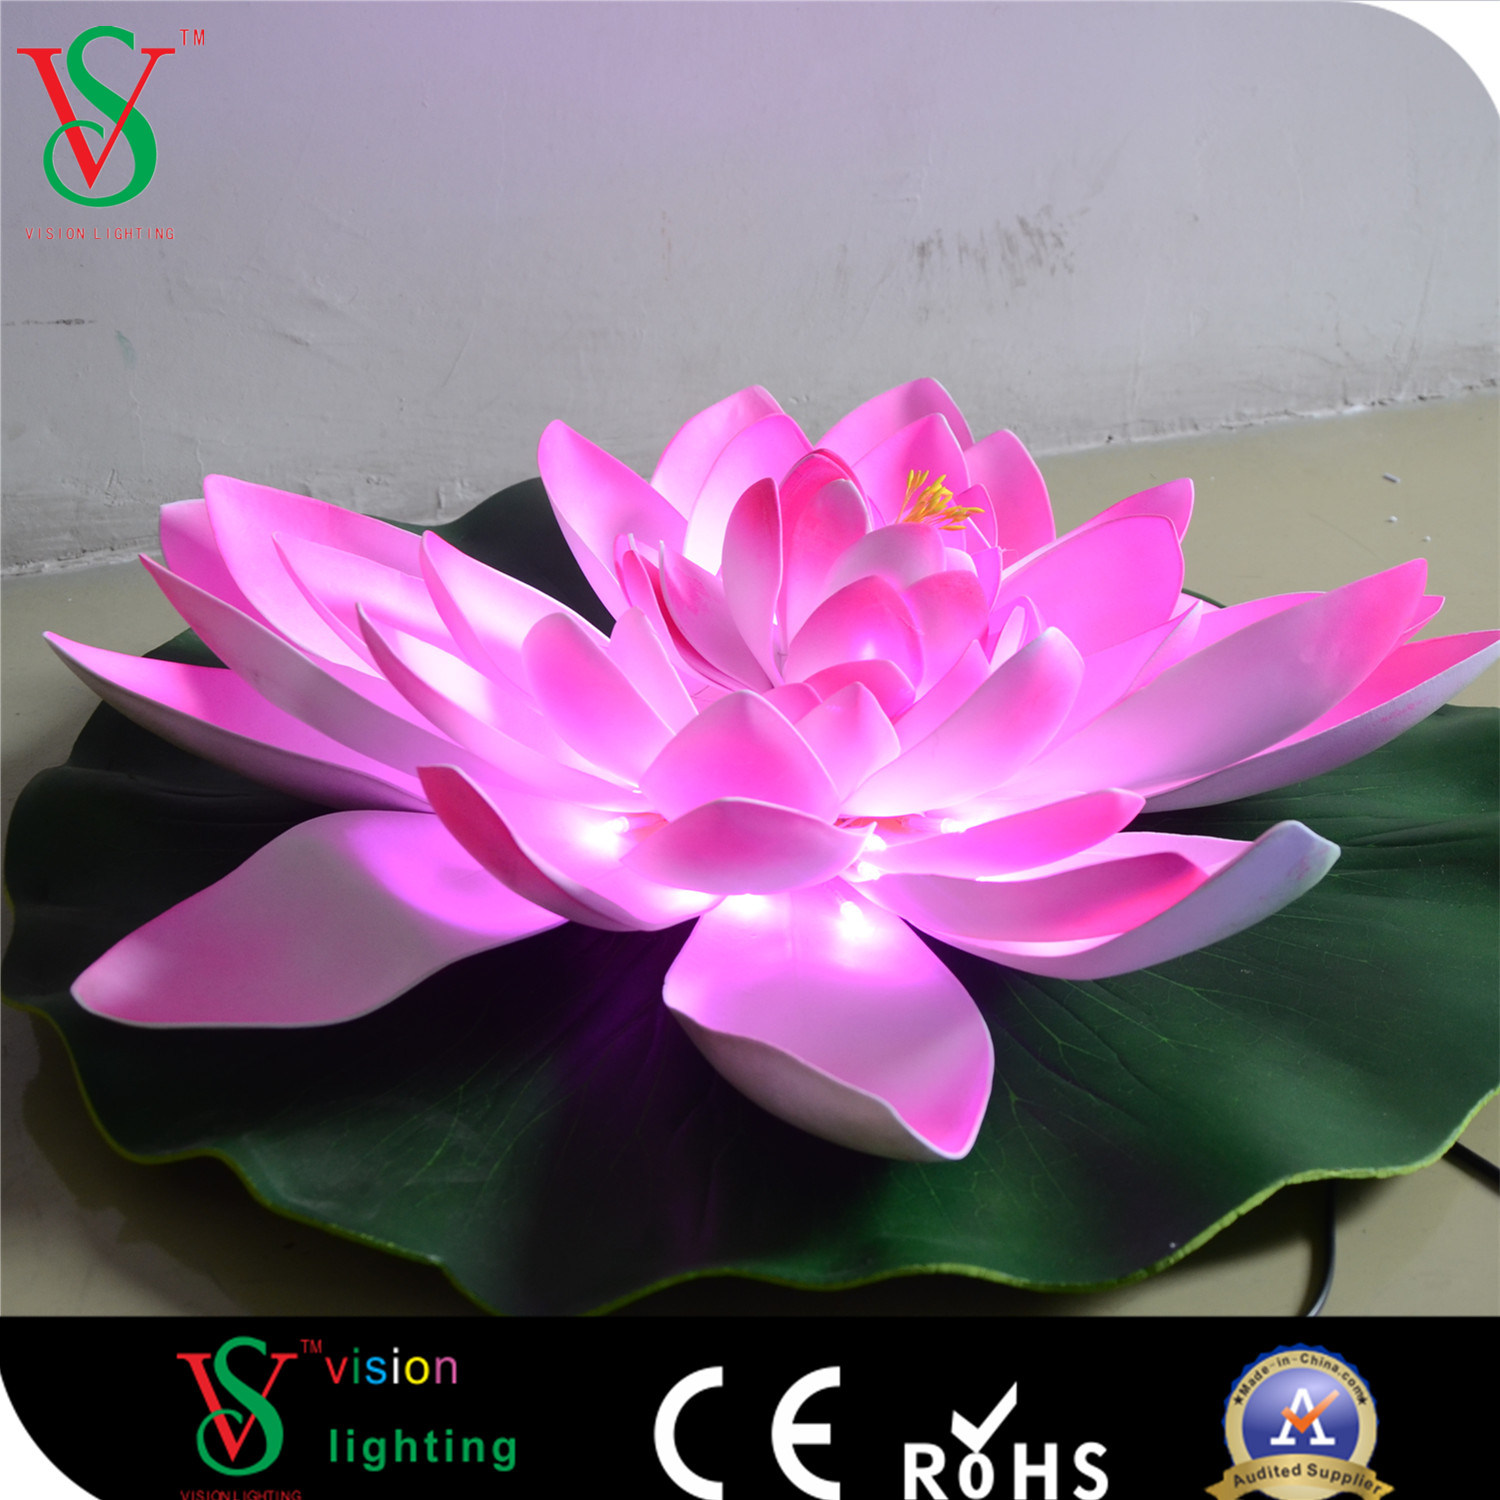 China wholesale led pu material lotus light for outdoor decoration china wholesale led pu material lotus light for outdoor decoration china holiday light artificial flower light izmirmasajfo